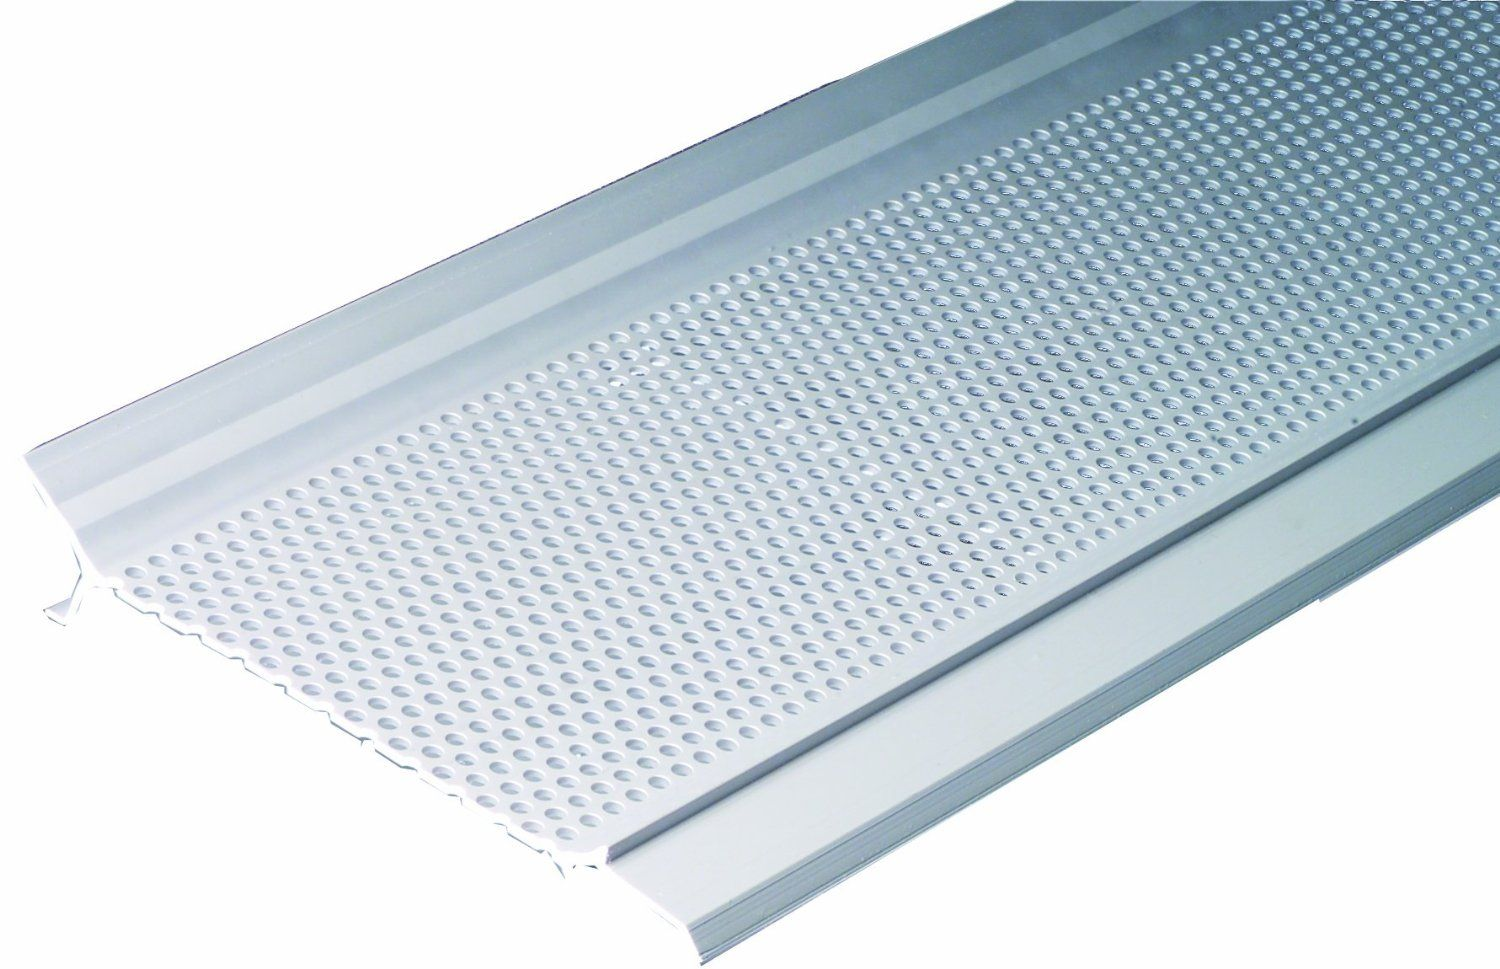 Gutter Guard Pro Gg5w 1 12 Foot Gutter Screen System Snap In Cover White Read More Reviews Of The Product By Visiting Gutter Screens Gutter Guard Gutter